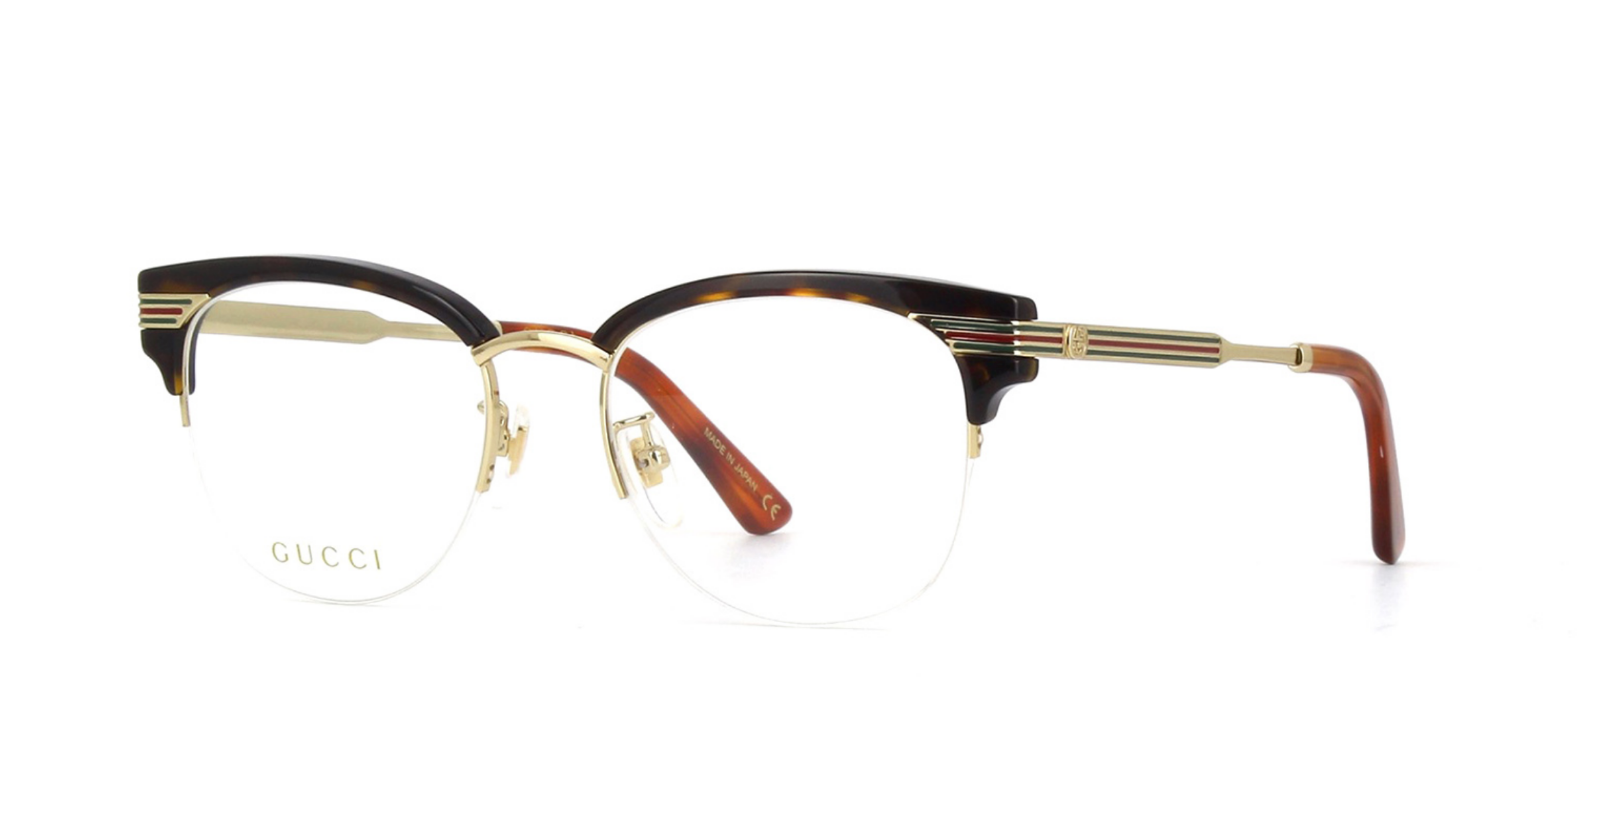 45927d46cfe3 S l1600. S l1600. Previous. Gucci GG0201O 002 Eyeglasses Havana Brown Gold  Frame 50mm · Gucci GG0201O 002 Eyeglasses ...